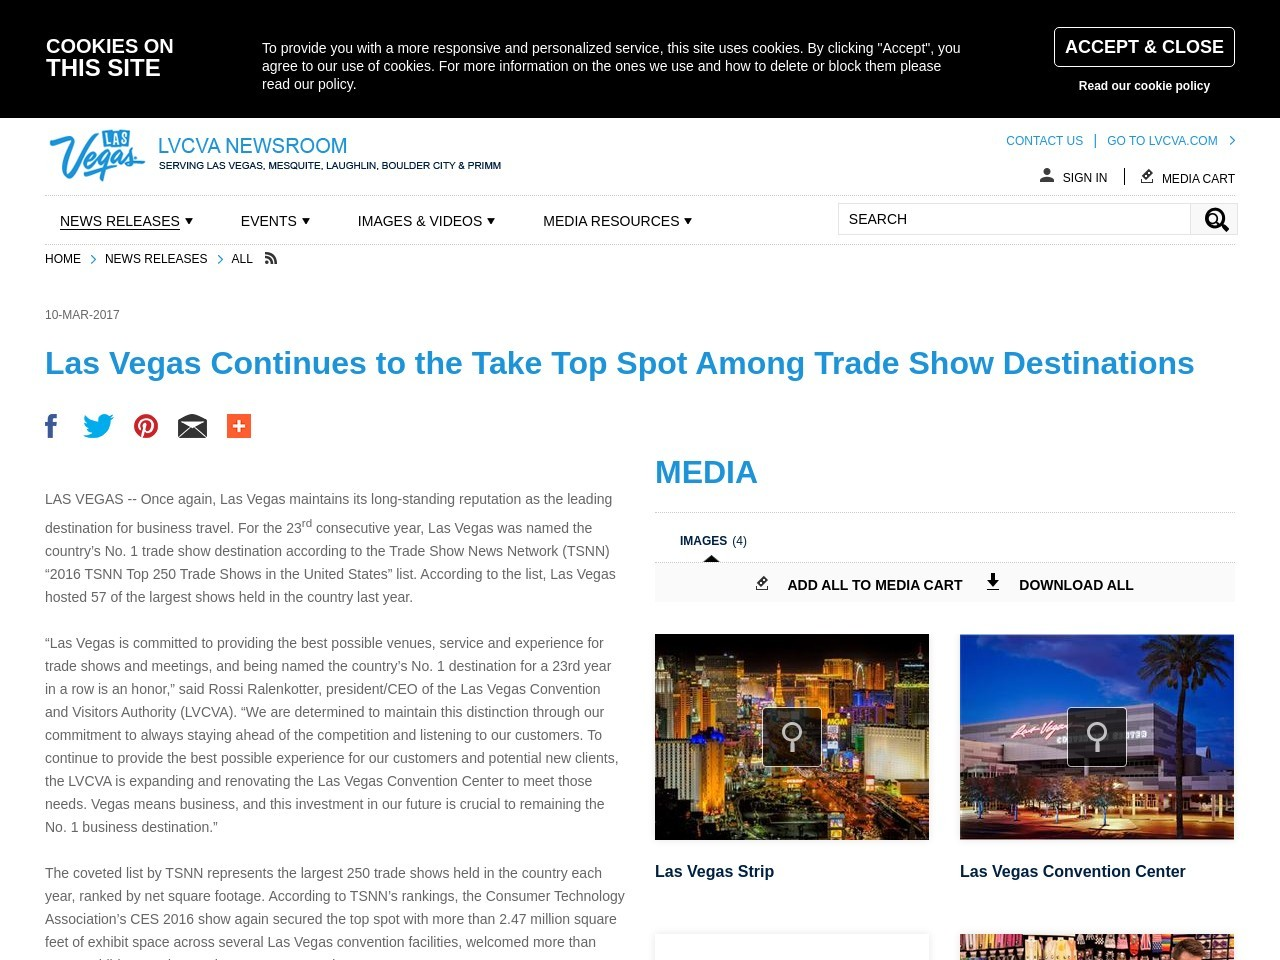 Las Vegas Continues to the Take Top Spot Among Trade Show Destinations